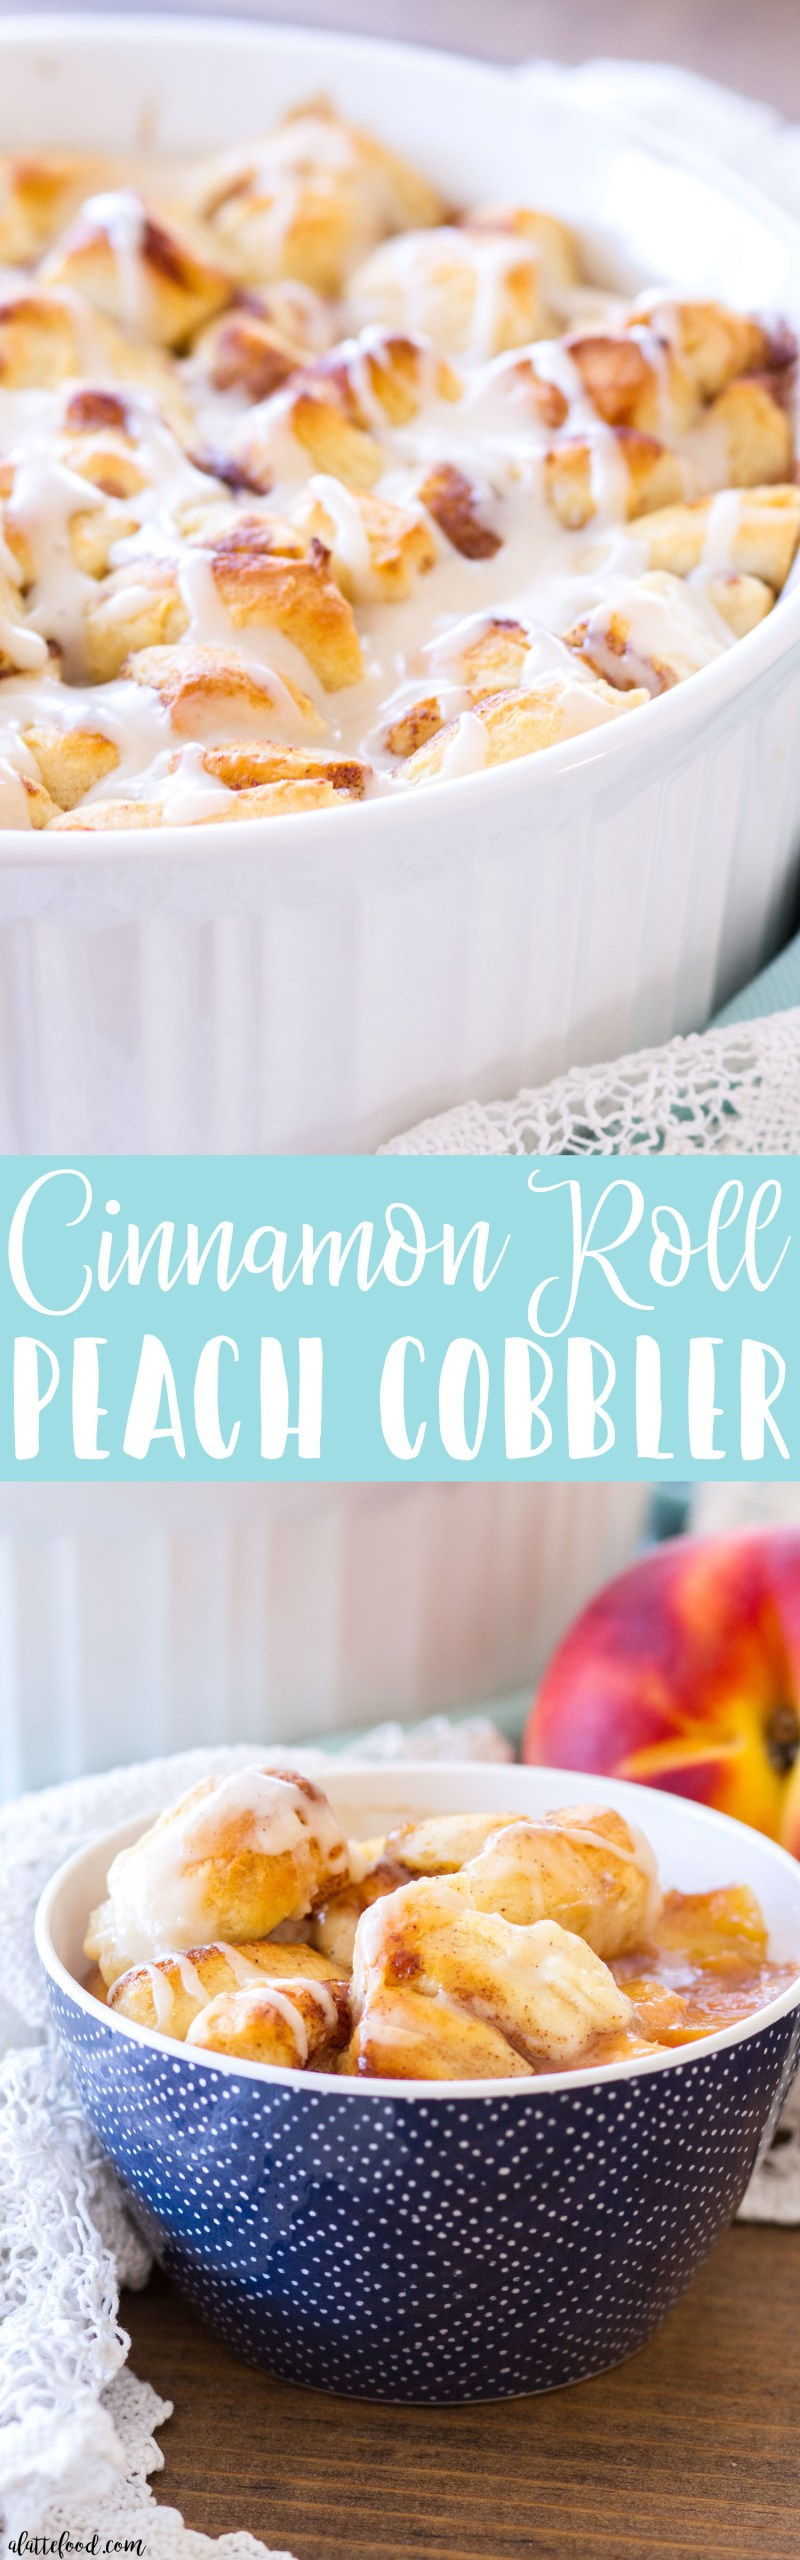 This Easy Cinnamon Roll Peach Cobbler is made with fresh peaches, rich spices, and pre-made cinnamon roll dough! This peach cobbler recipe is topped with a homemade vanilla glaze, making this a super quick and easy summer dessert!